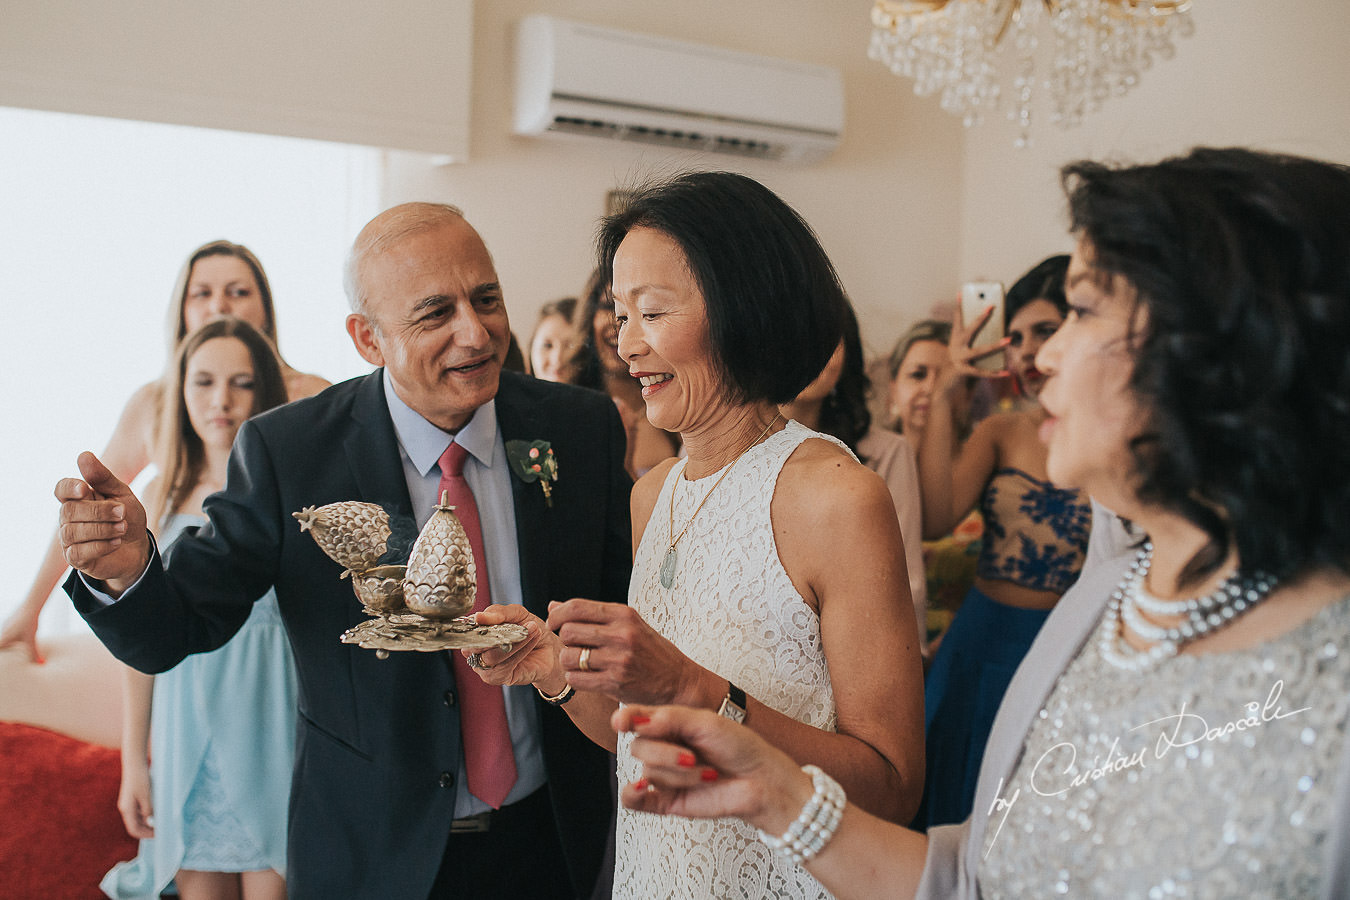 Guest gives her blessing at a traditional wedding ceremony in Limassol, Cyprus.